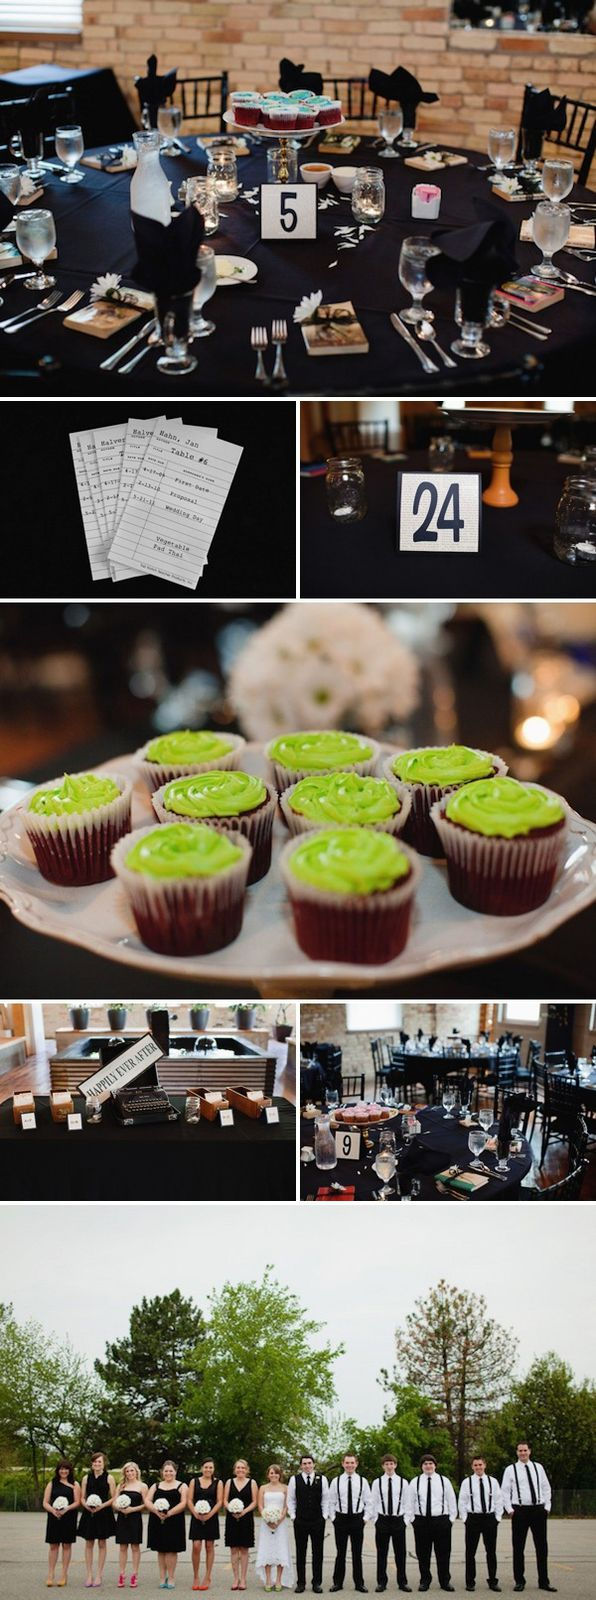 11-desserts-and-bridesmaids-Bryan-and-Mae-Wedding-Photograp